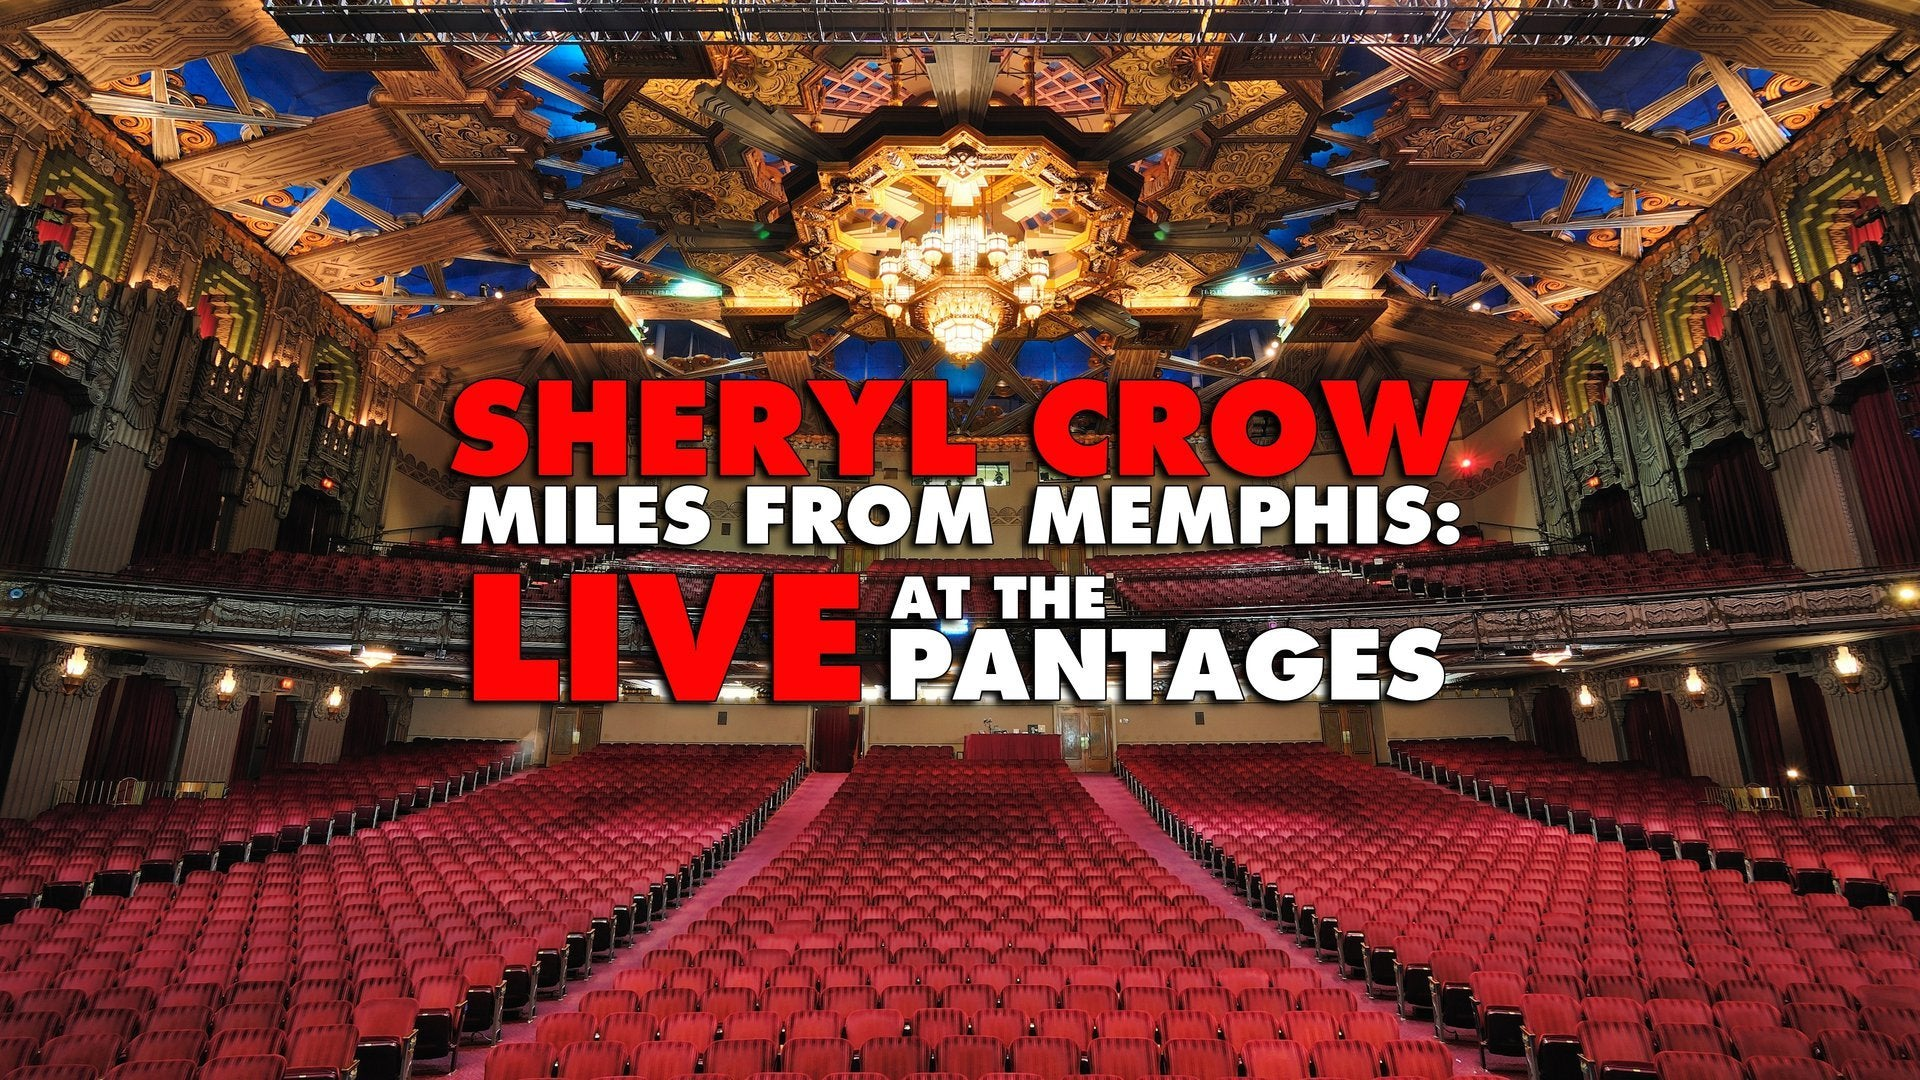 Sheryl Crow: Miles From Memphis, Live at the Pantages